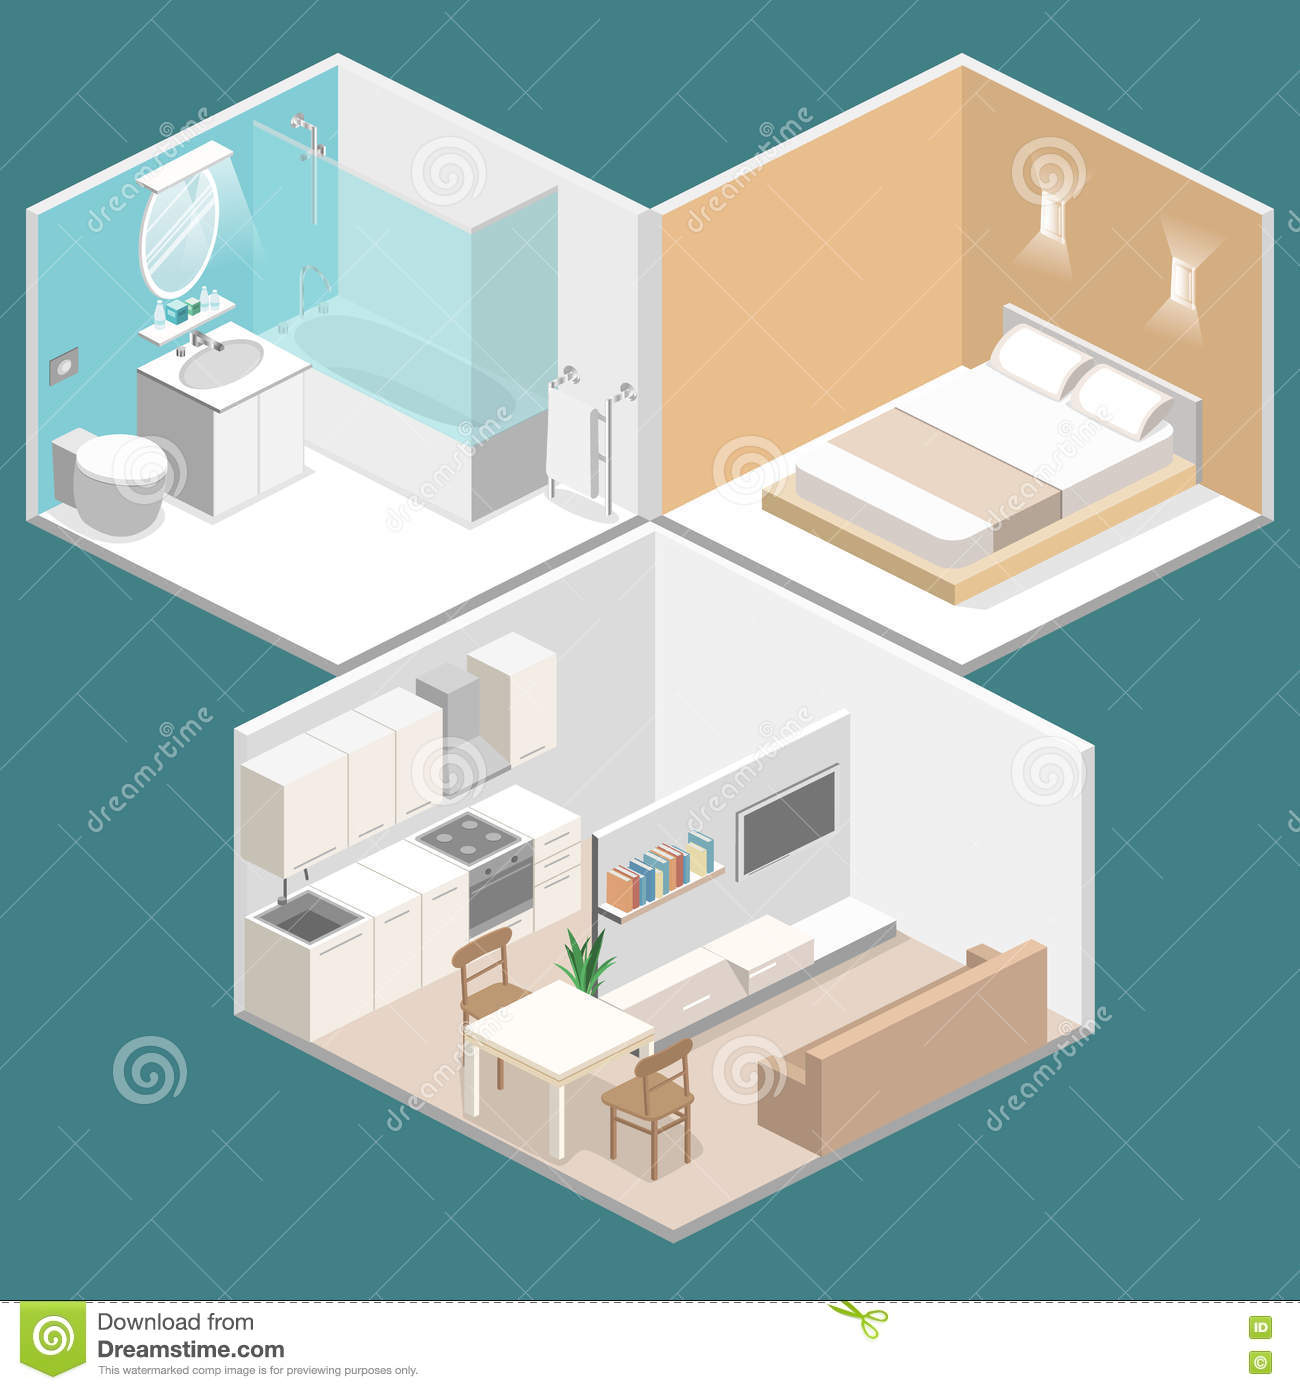 living room bedroom bathroom kitchen isometric home dining room vector illustration 18975